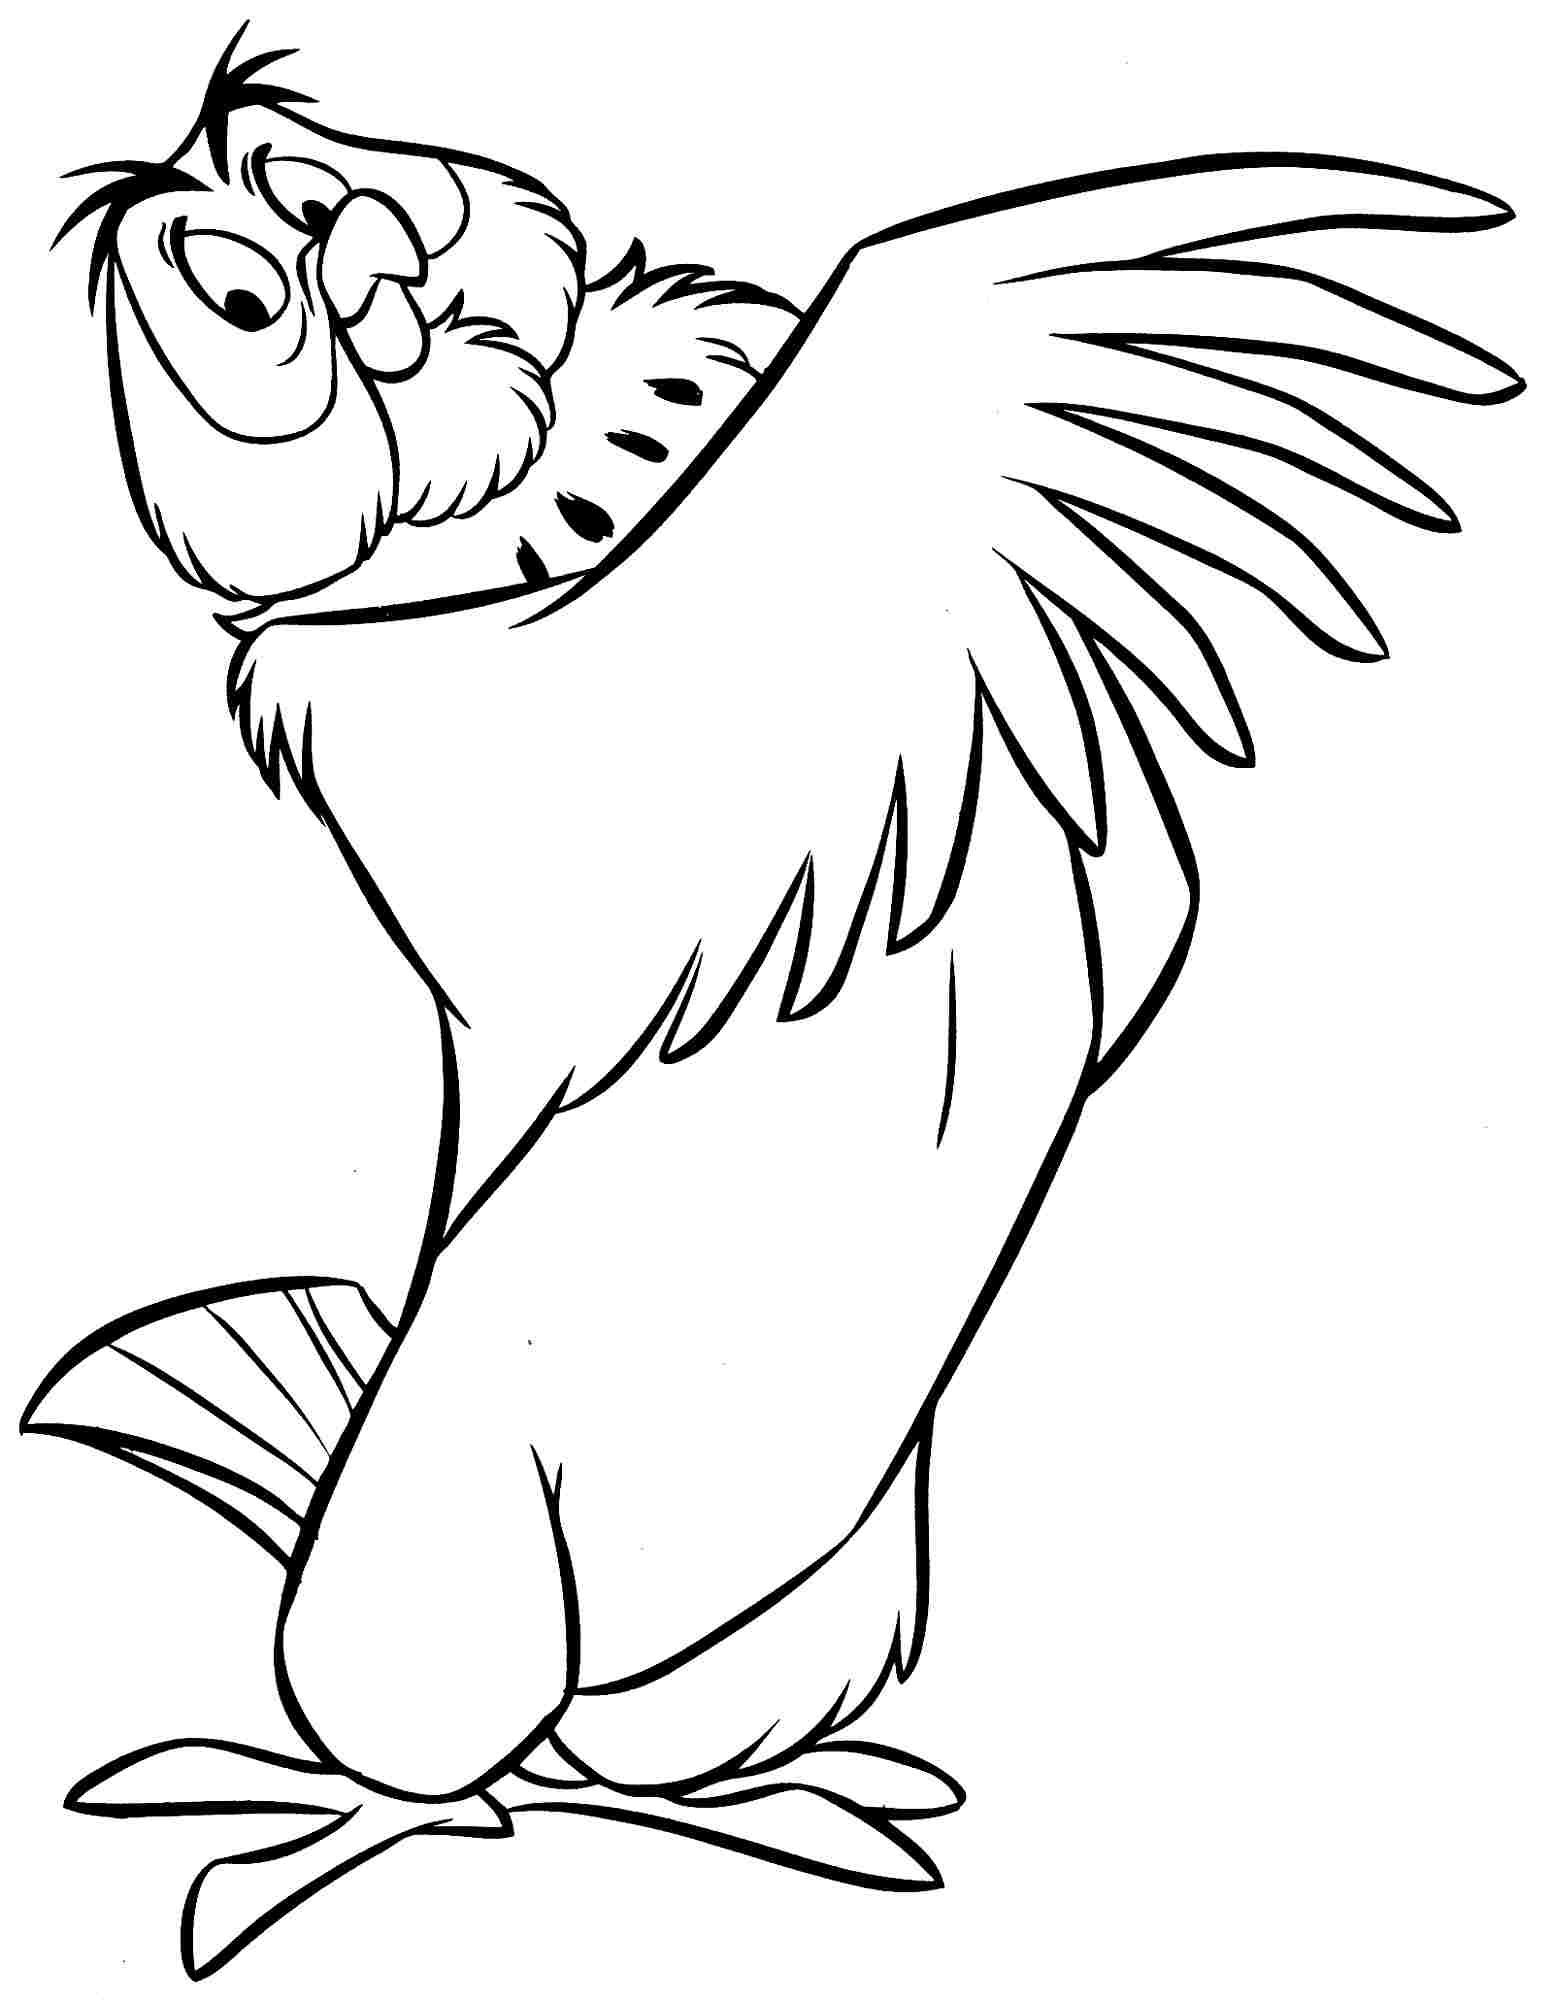 Winnie The Pooh Rabbit Coloring Pages Owl Outline Winnie The Pooh Google Search Wood Burning Ide Owl Coloring Pages Winnie The Pooh Drawing Owl Winnie The Pooh